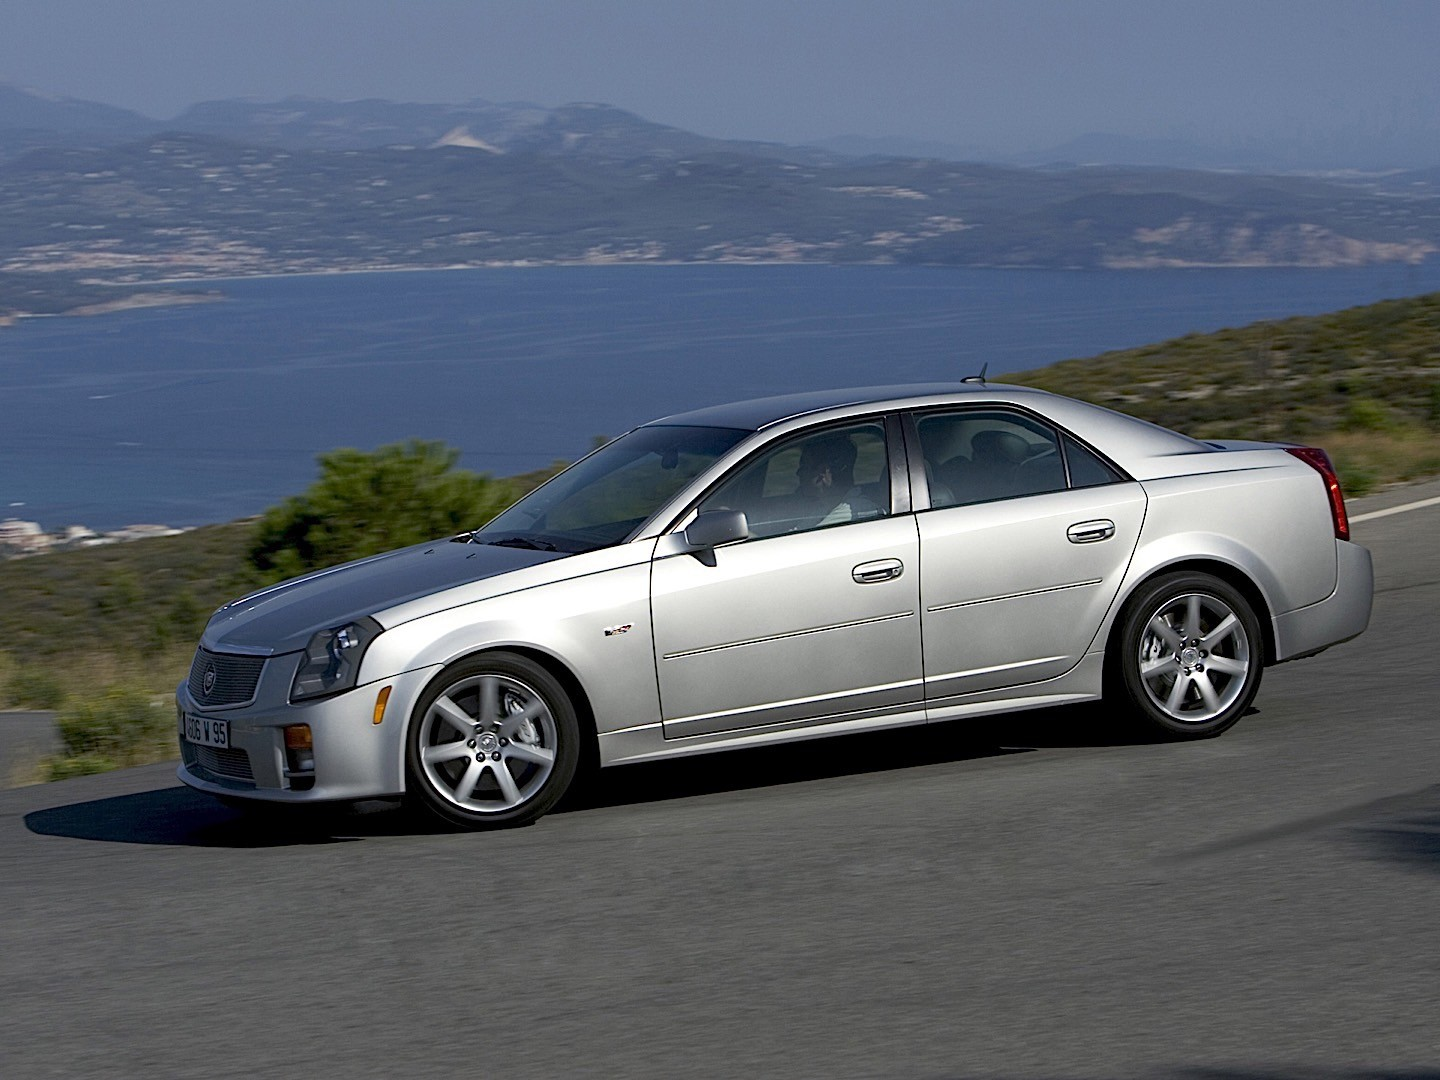 Cadillac Cts V in addition Cadillac Cts Evolution in addition Trans Fluid Sensor likewise Imag further Cadillac Cts. on 2003 cadillac cts engine